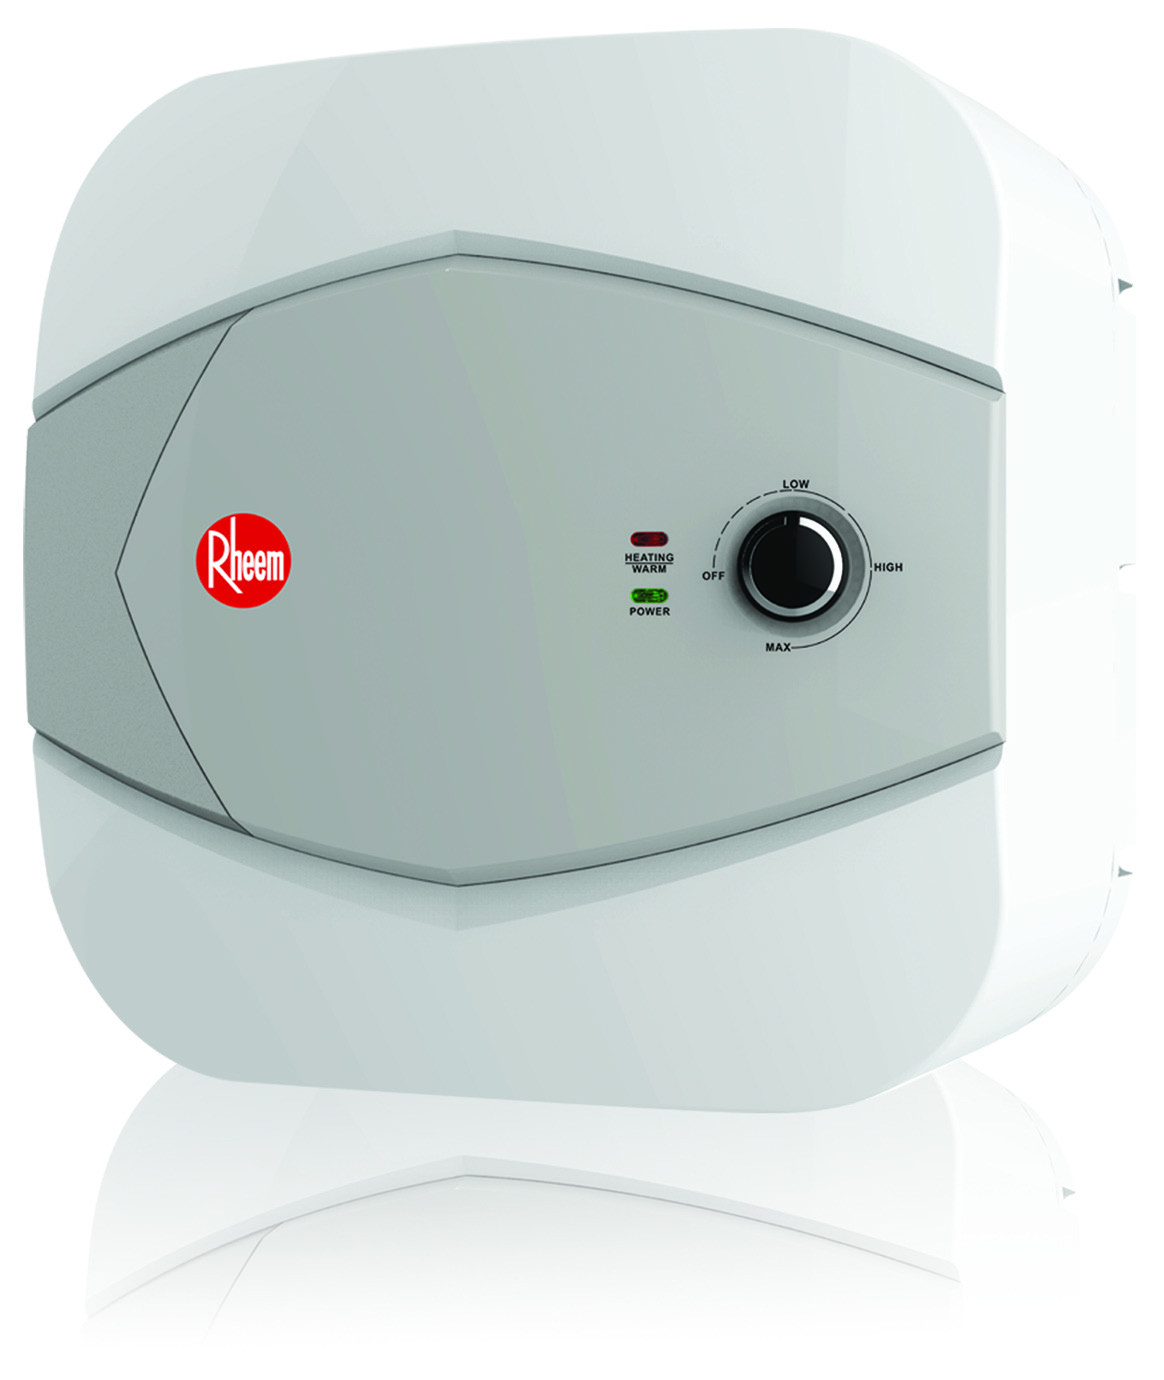 994-rheem-rcy-series-electric-water-heater-15-liter